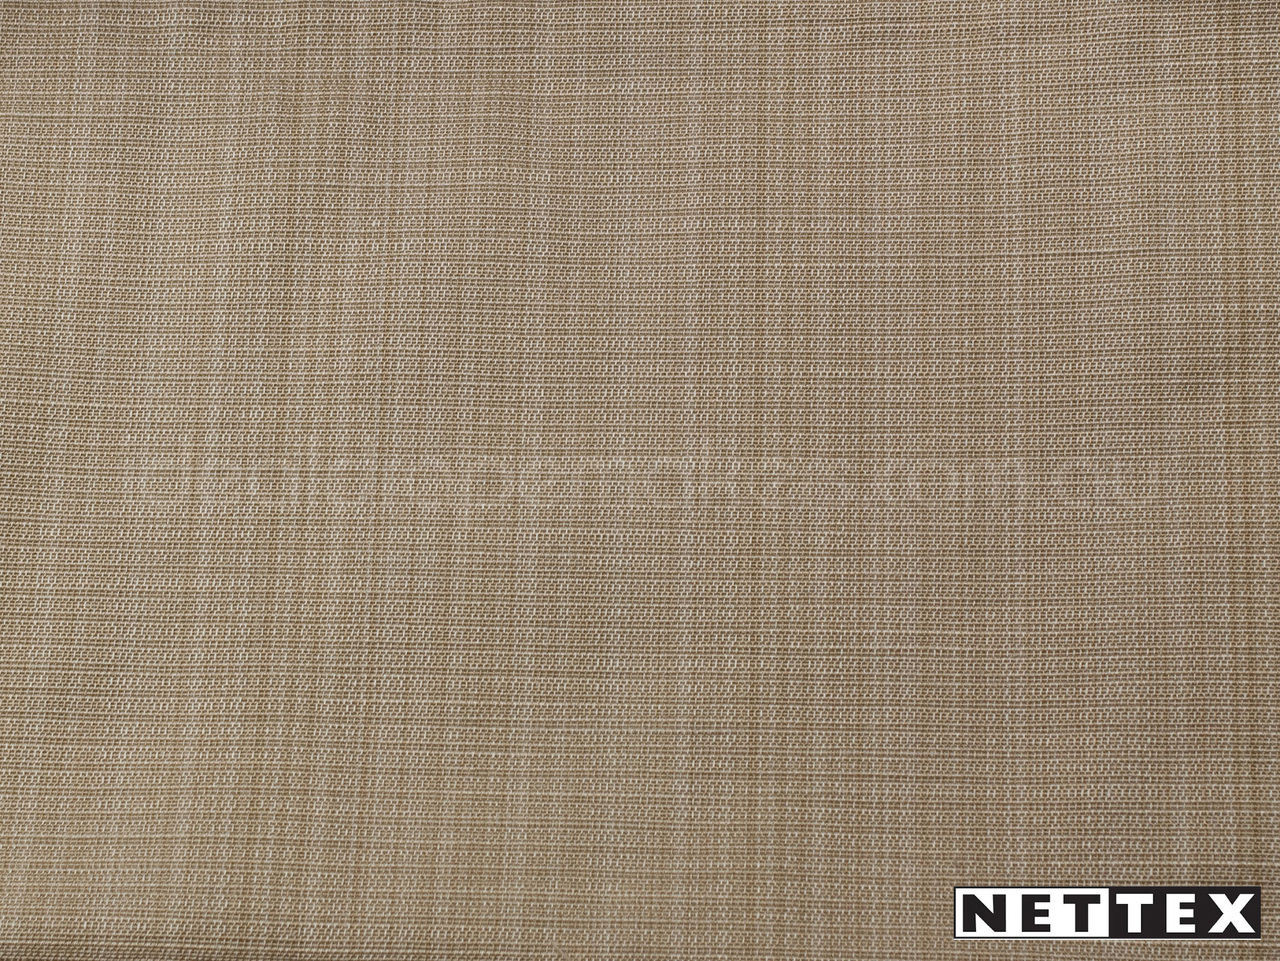 Nettex Grange Cane MG39  | Curtain Fabric - Brown, Plain, Fibre Blends, Transitional, Uncoated, Domestic Use, Standard Width, Strie